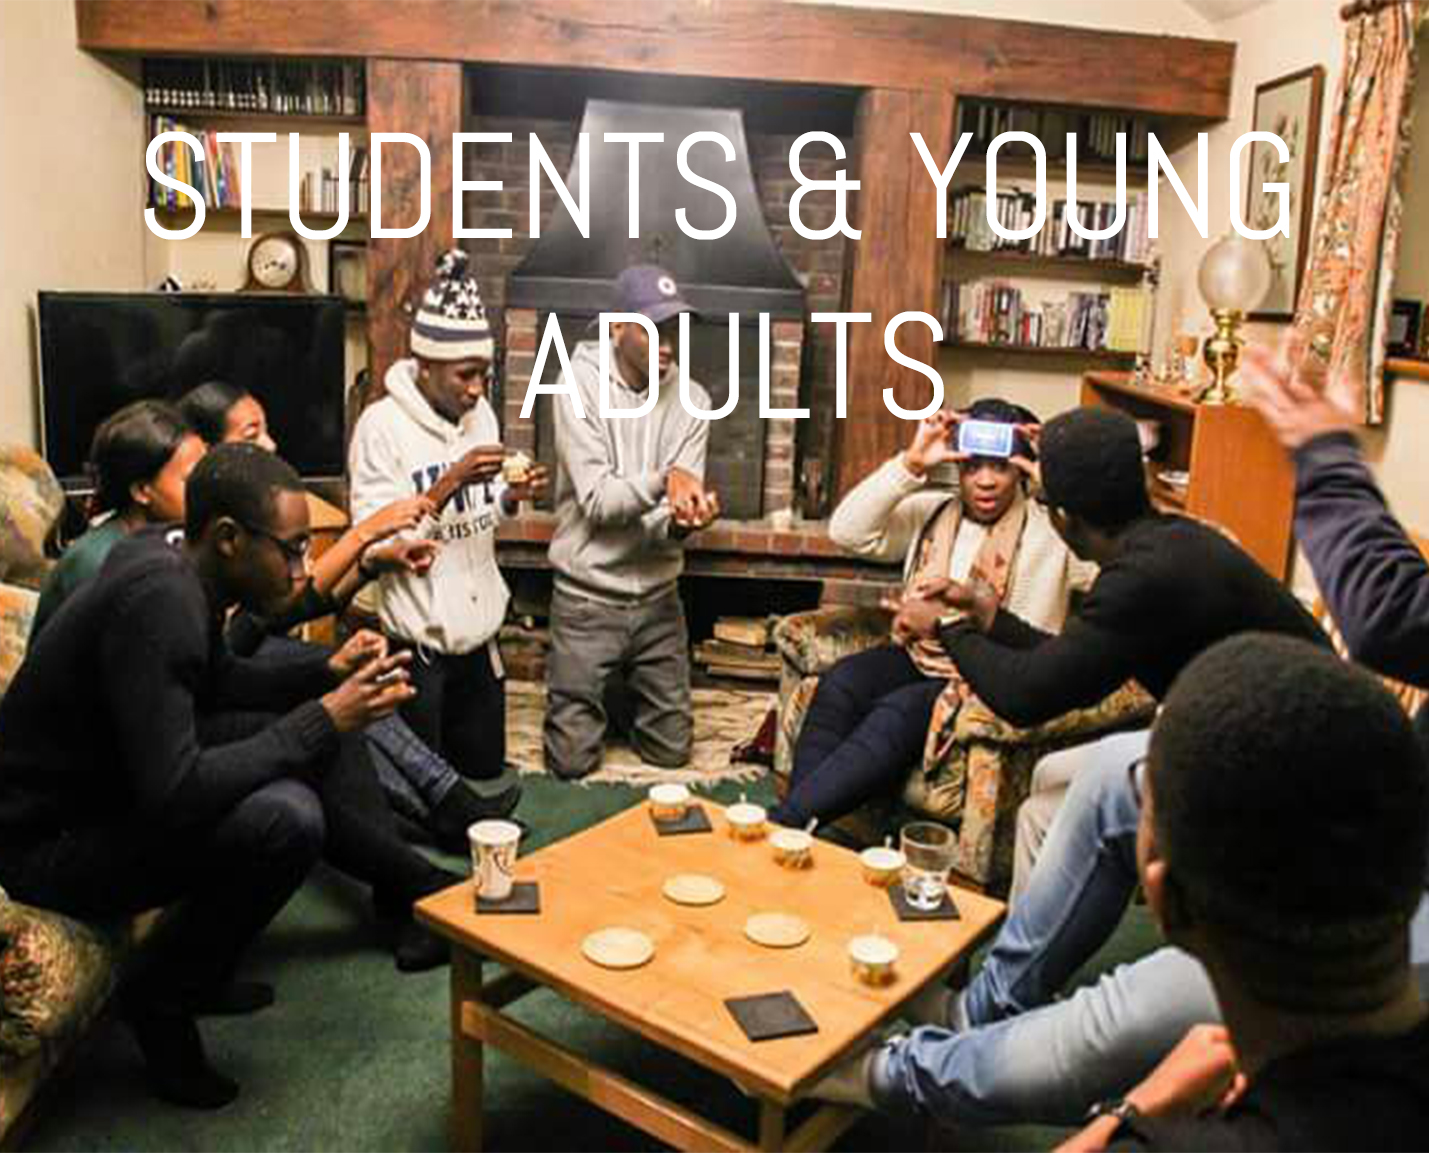 We understand that being a student can be tough so why not come along and get some home cooked food! We explore God's word together and have a good time!  Day:  Wednesdays   Time:  7:30PM - 9:30PM